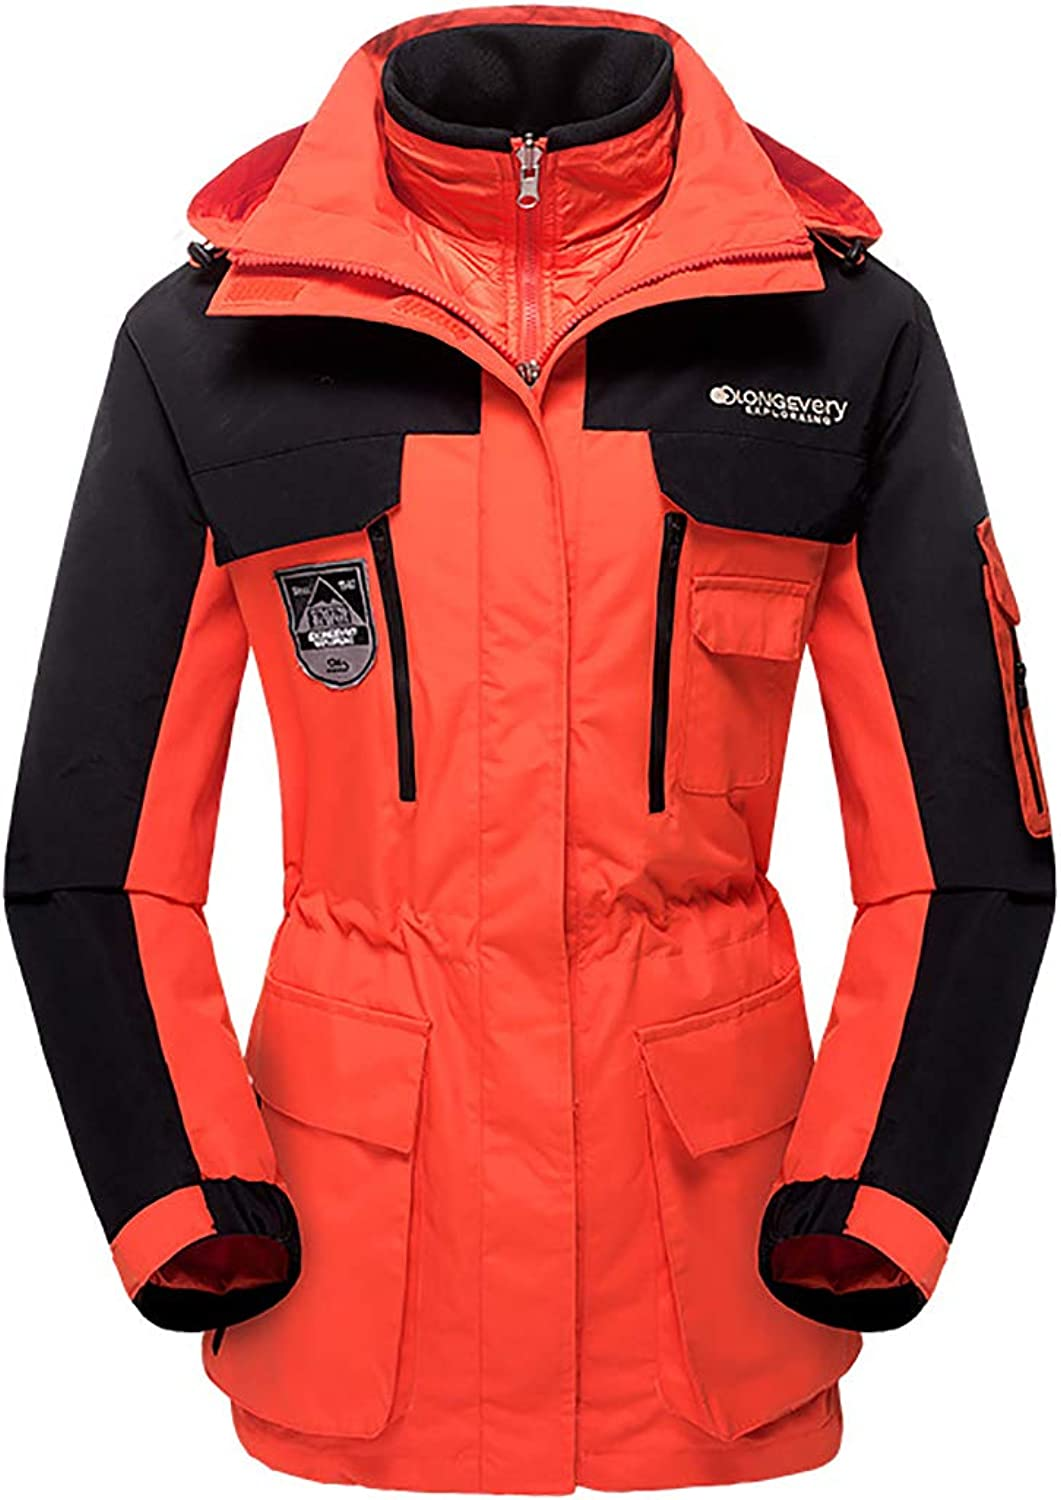 Women's 3-in-1 Windproof Hooded Outwear Coat Winter Thicken Warm Outdoor Sports Jacket Unisex,orange,XL